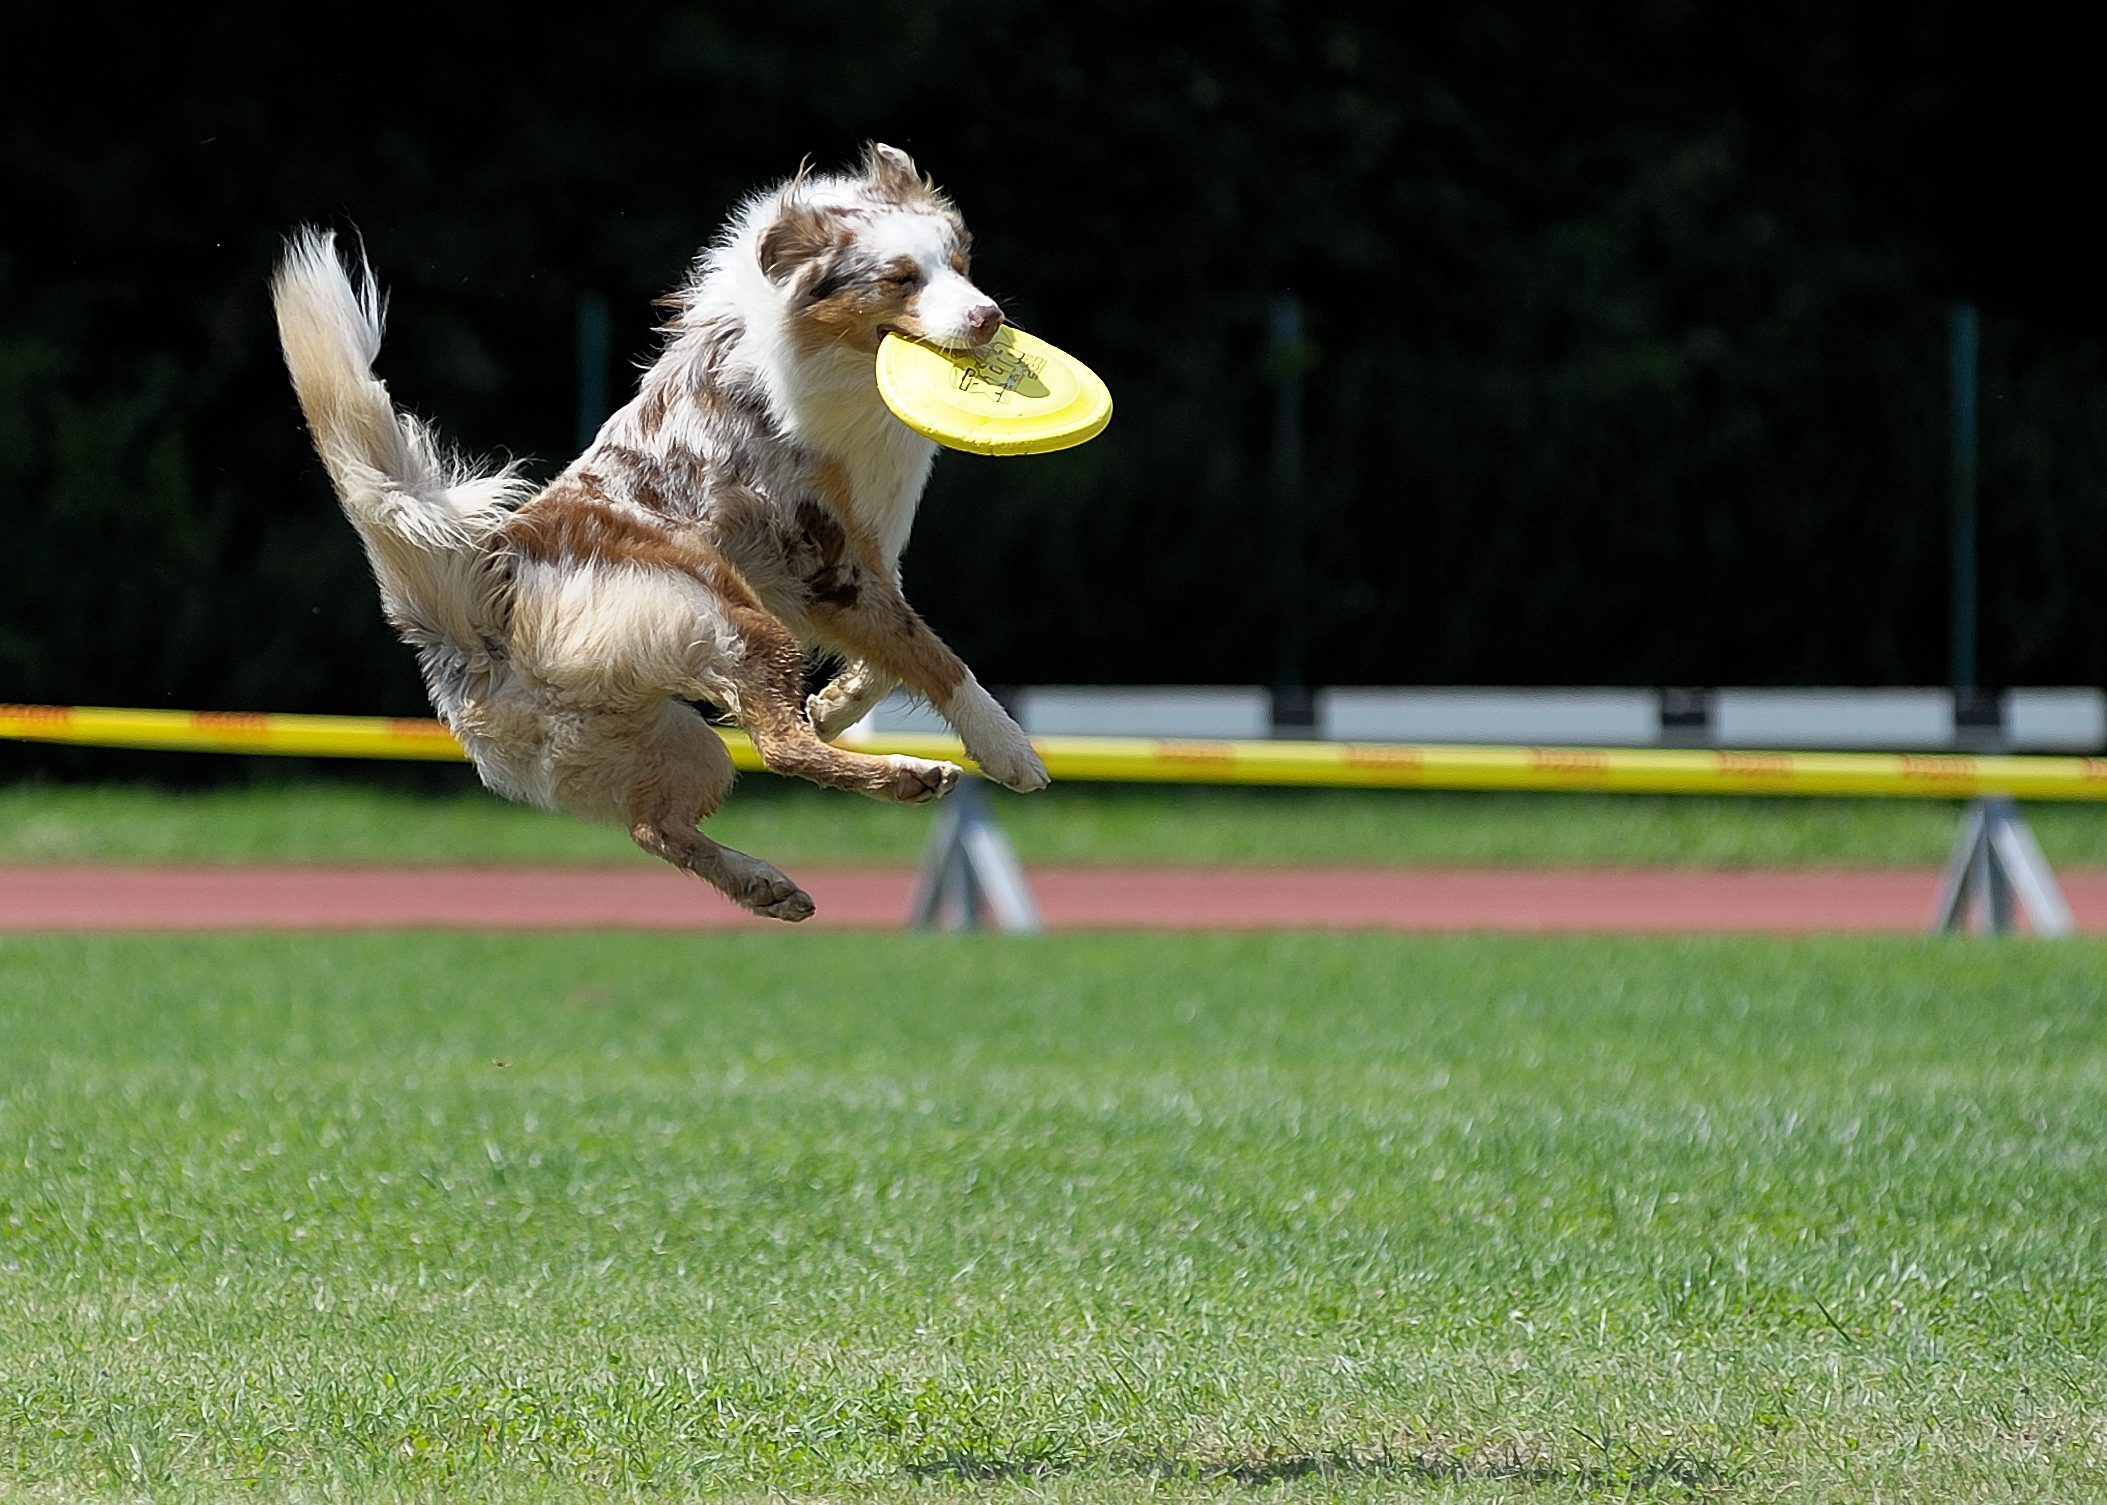 Flyball - canine game discipline